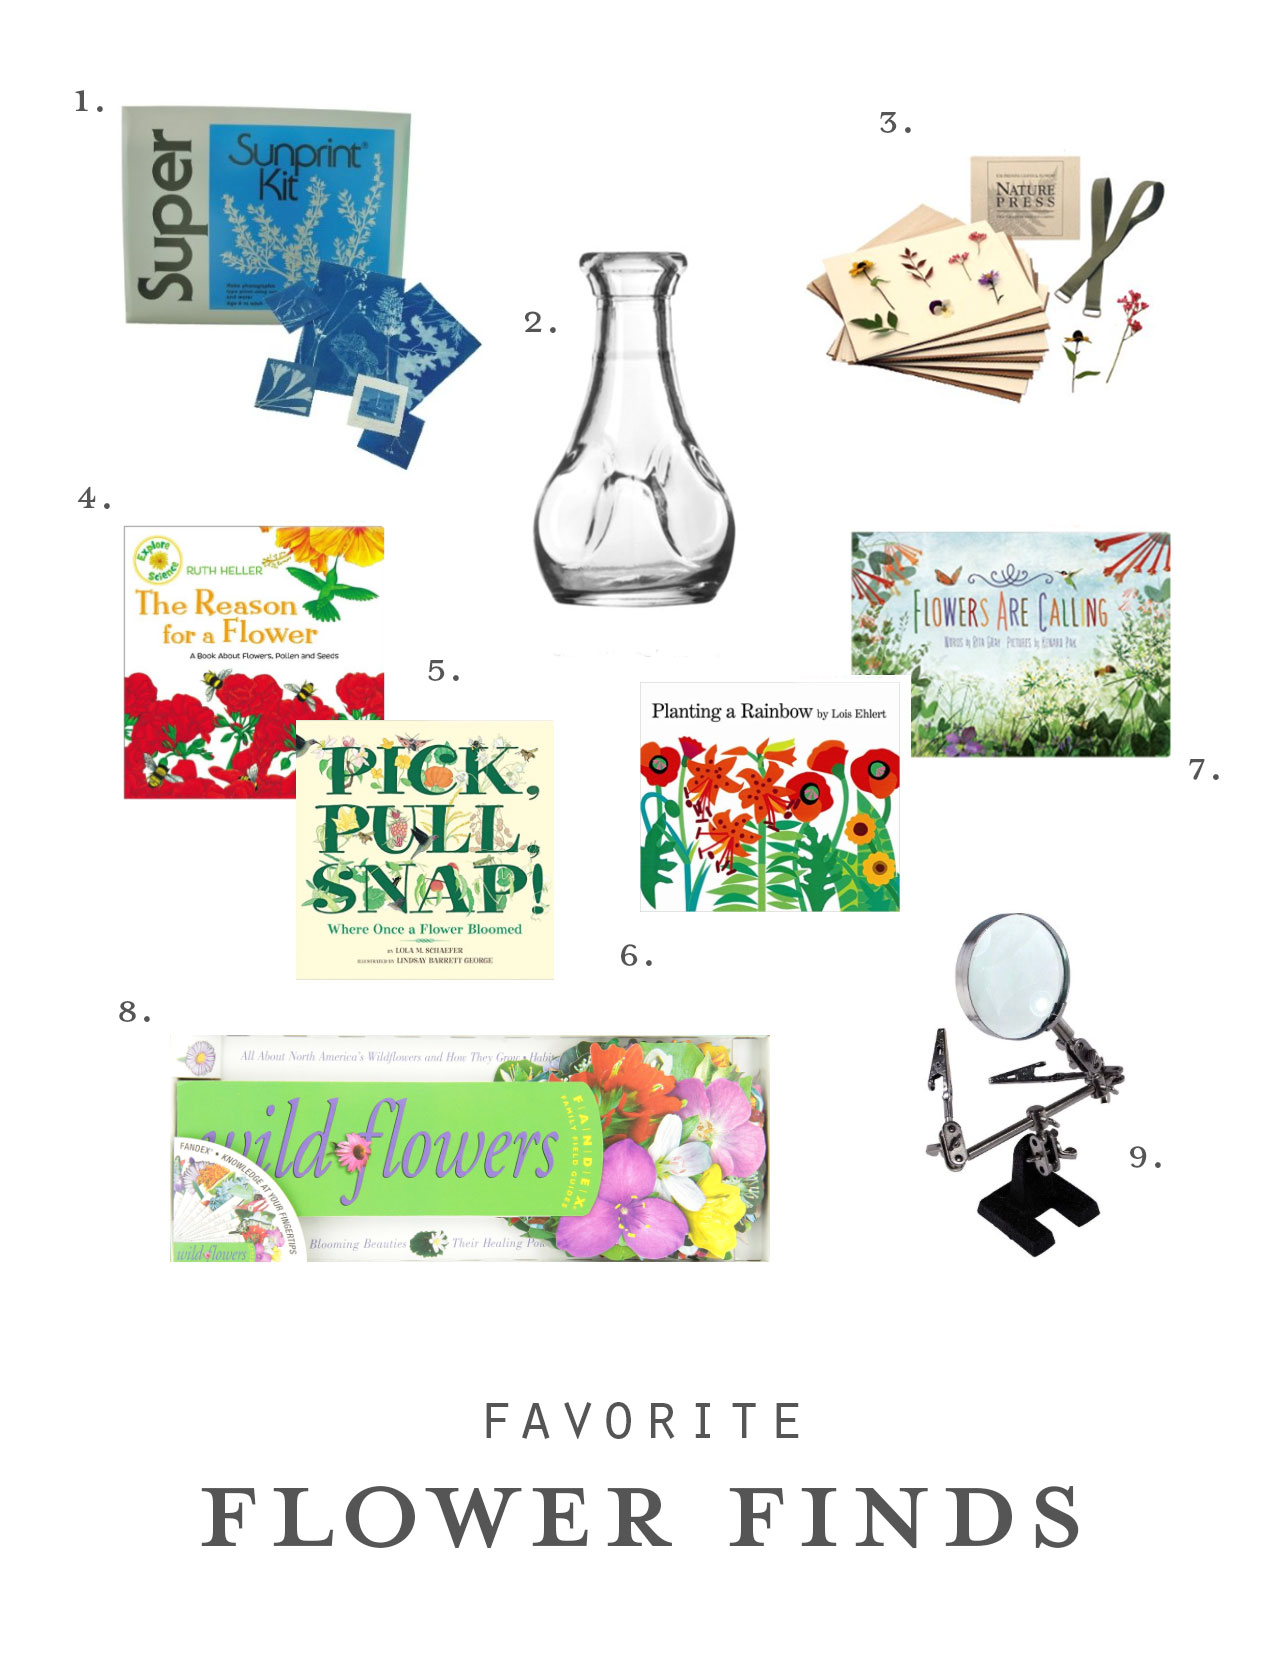 FavoriteFlowerFinds